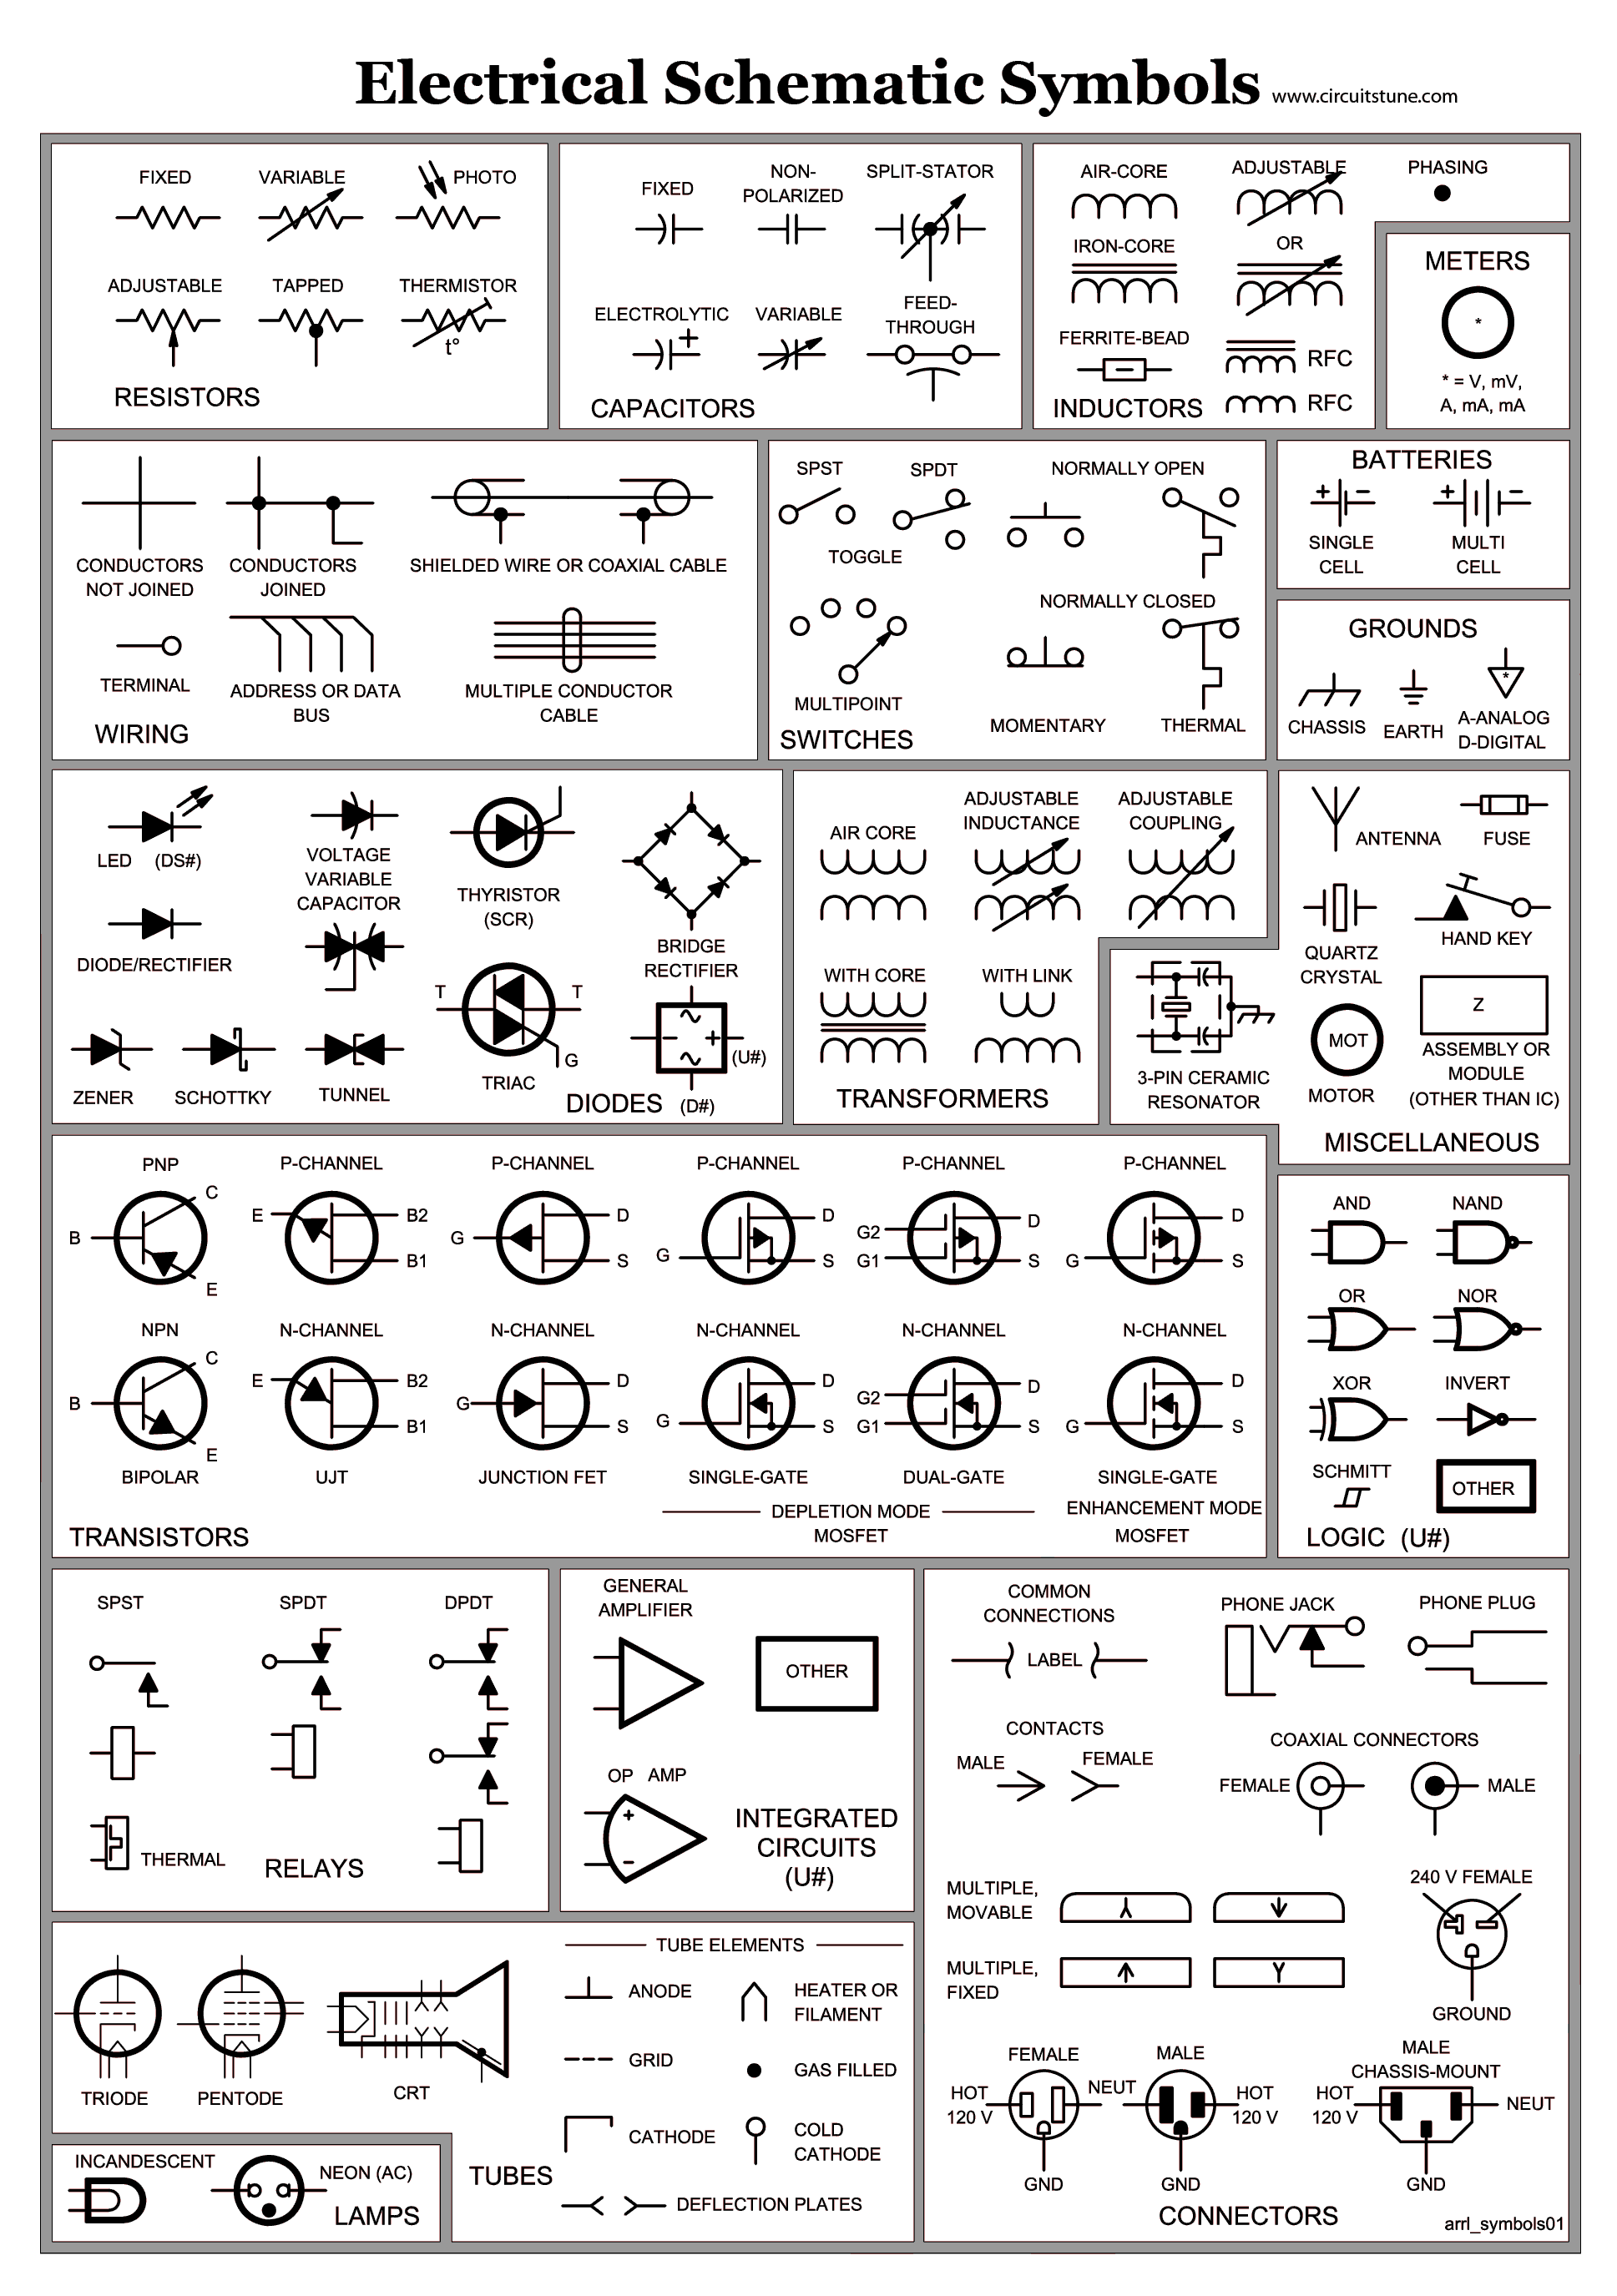 v wiring diagram symbols   wiring schematics and diagramshigh quality electrical schematic symbols